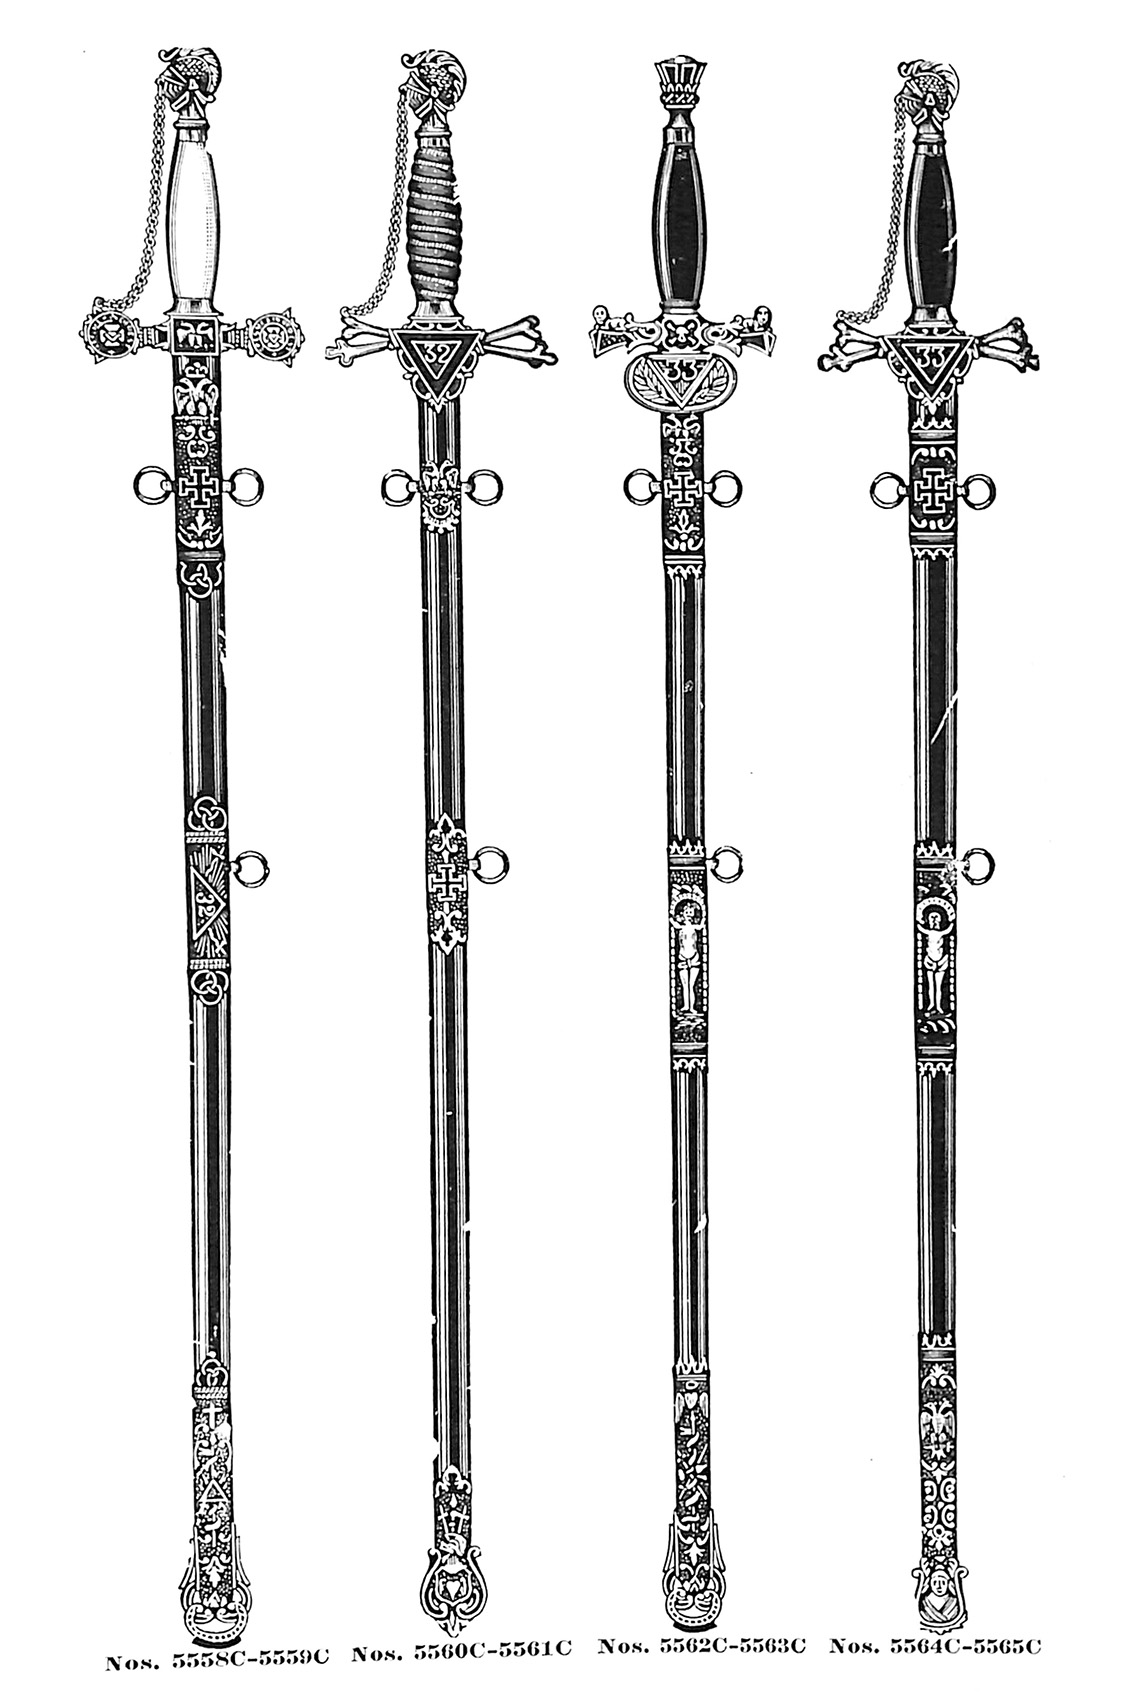 Consistory swords no. 5558C-5565C